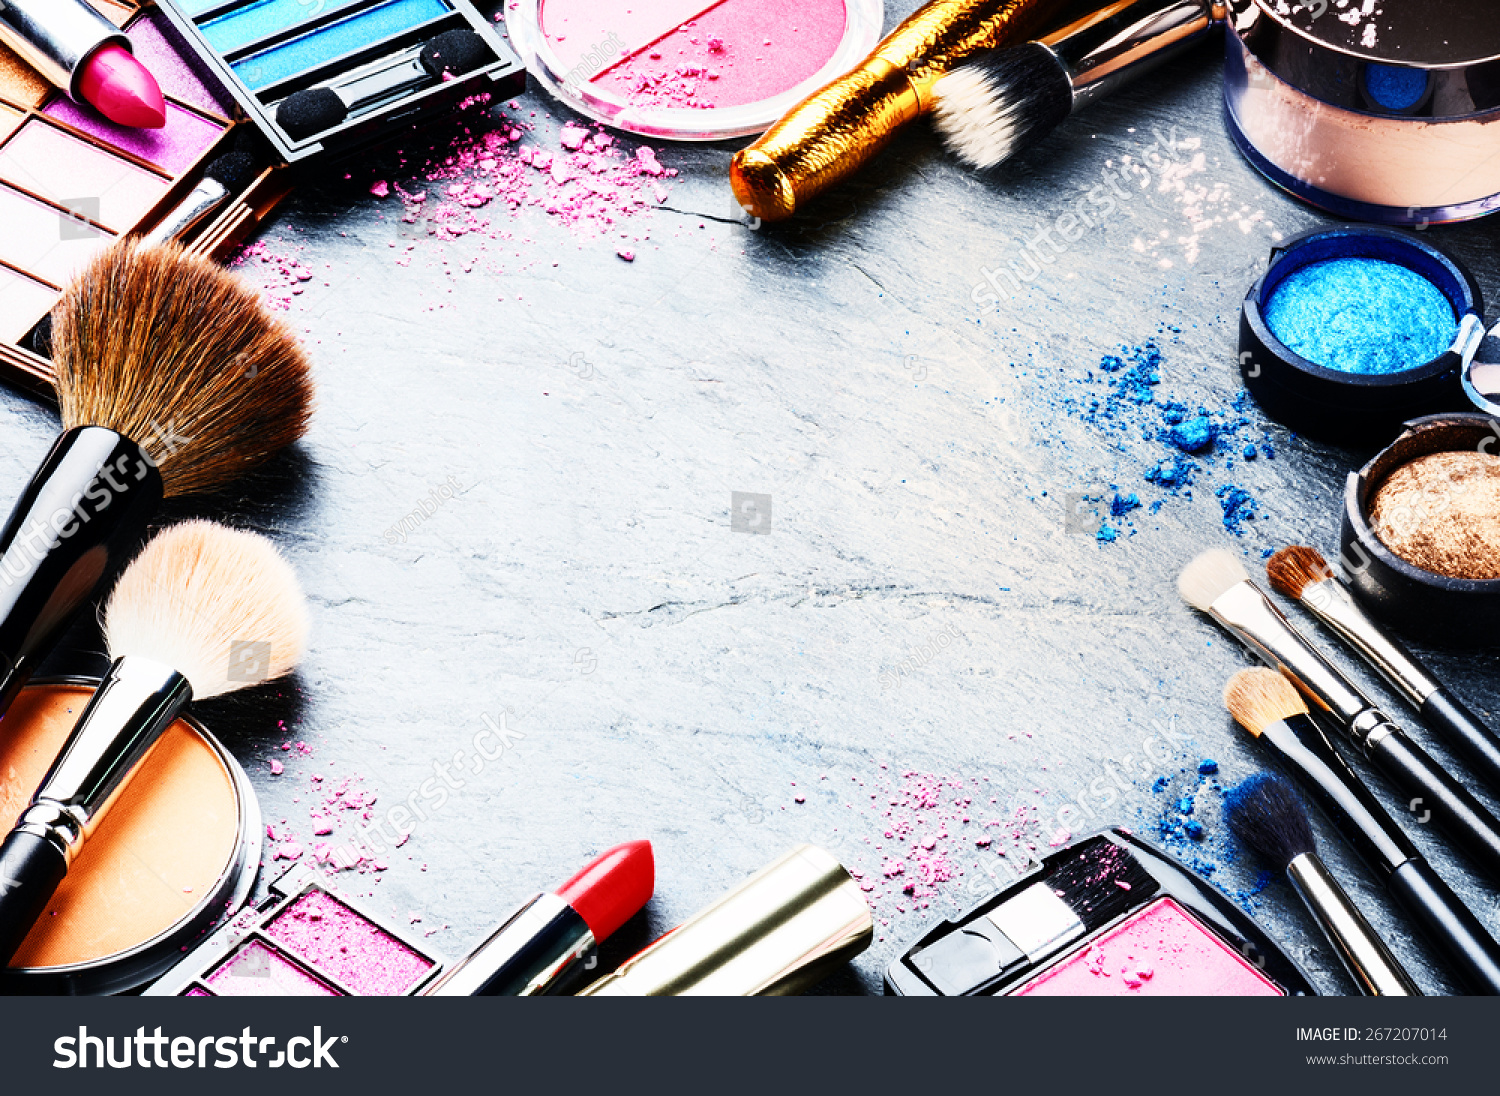 royaltyfree colorful frame with various makeup